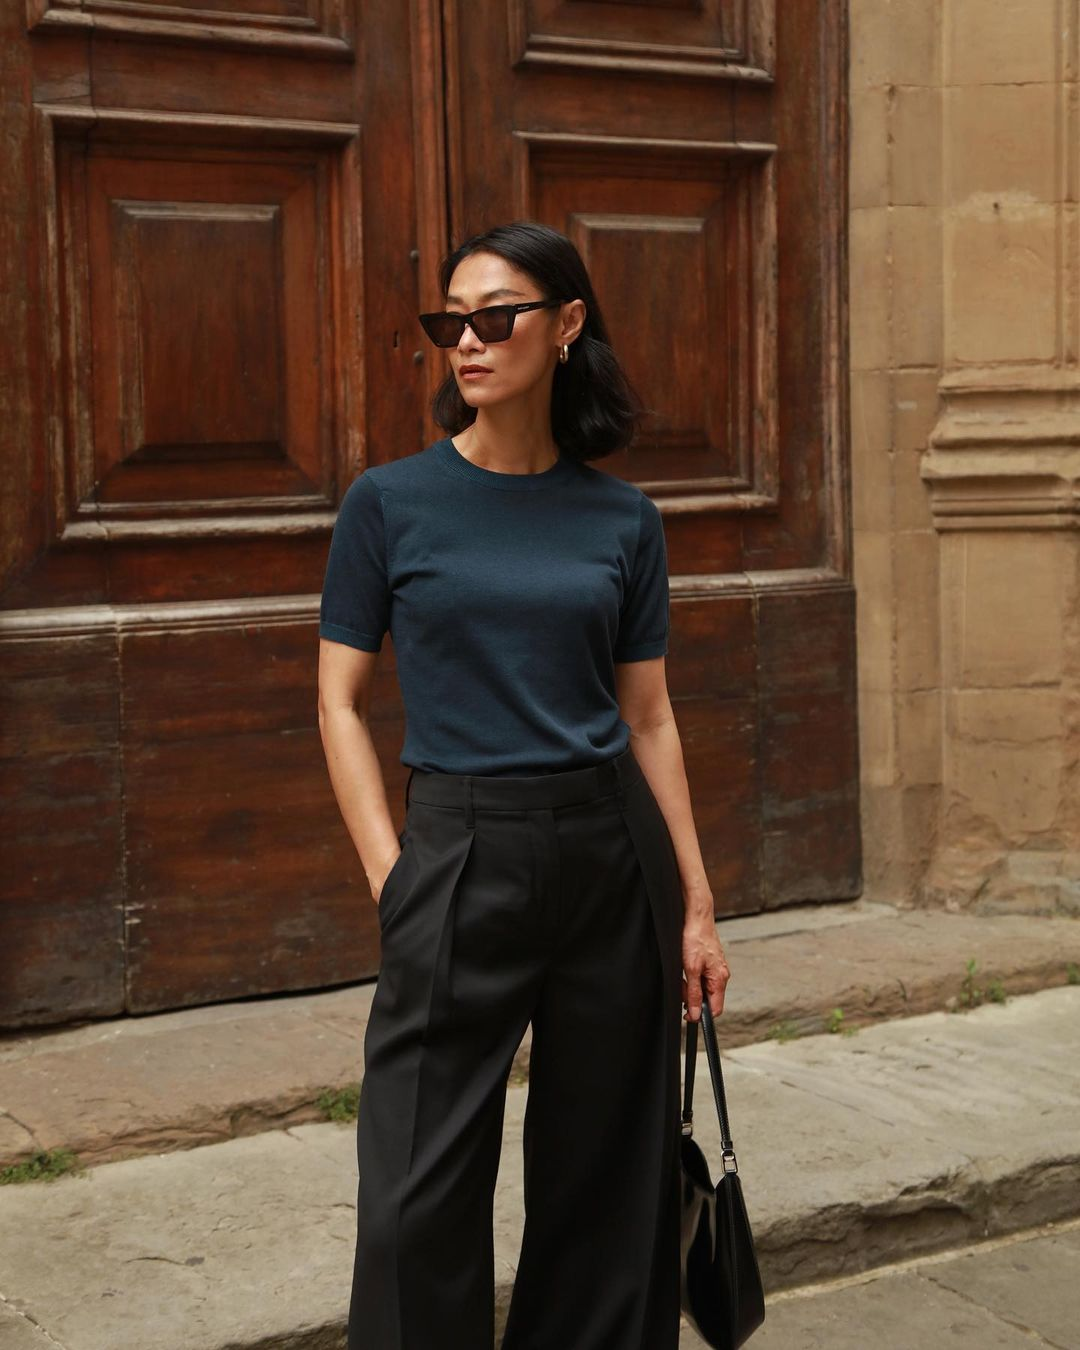 @ps.shadesofmylife in Soft Plated Knit + Single-Pleat Trouser from The Organic Collection.